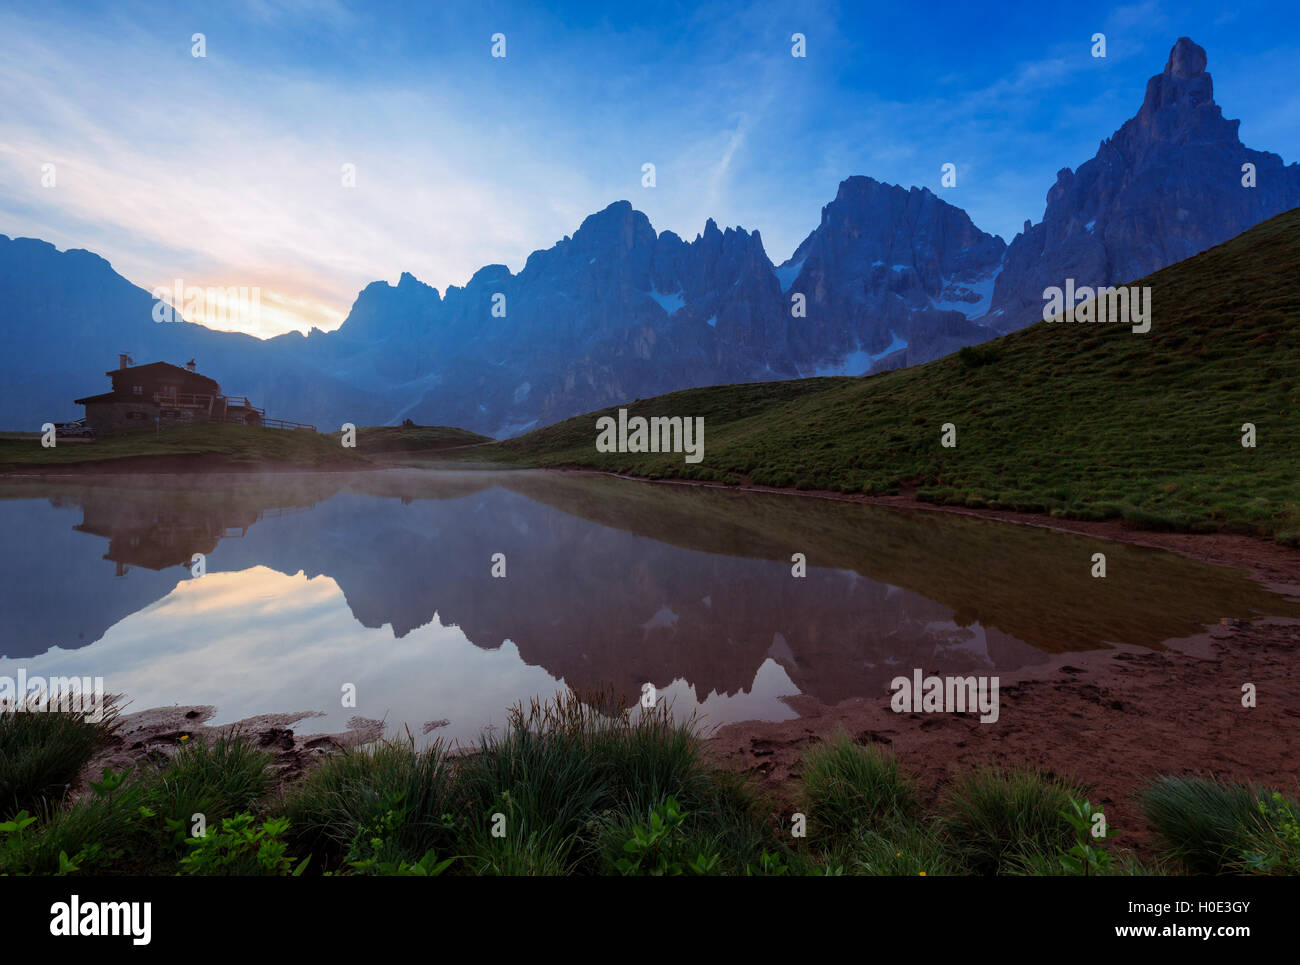 Refuge at Rolle Pass, Passo Rolle, Primiero valley, Trentino, Italy - Stock Image